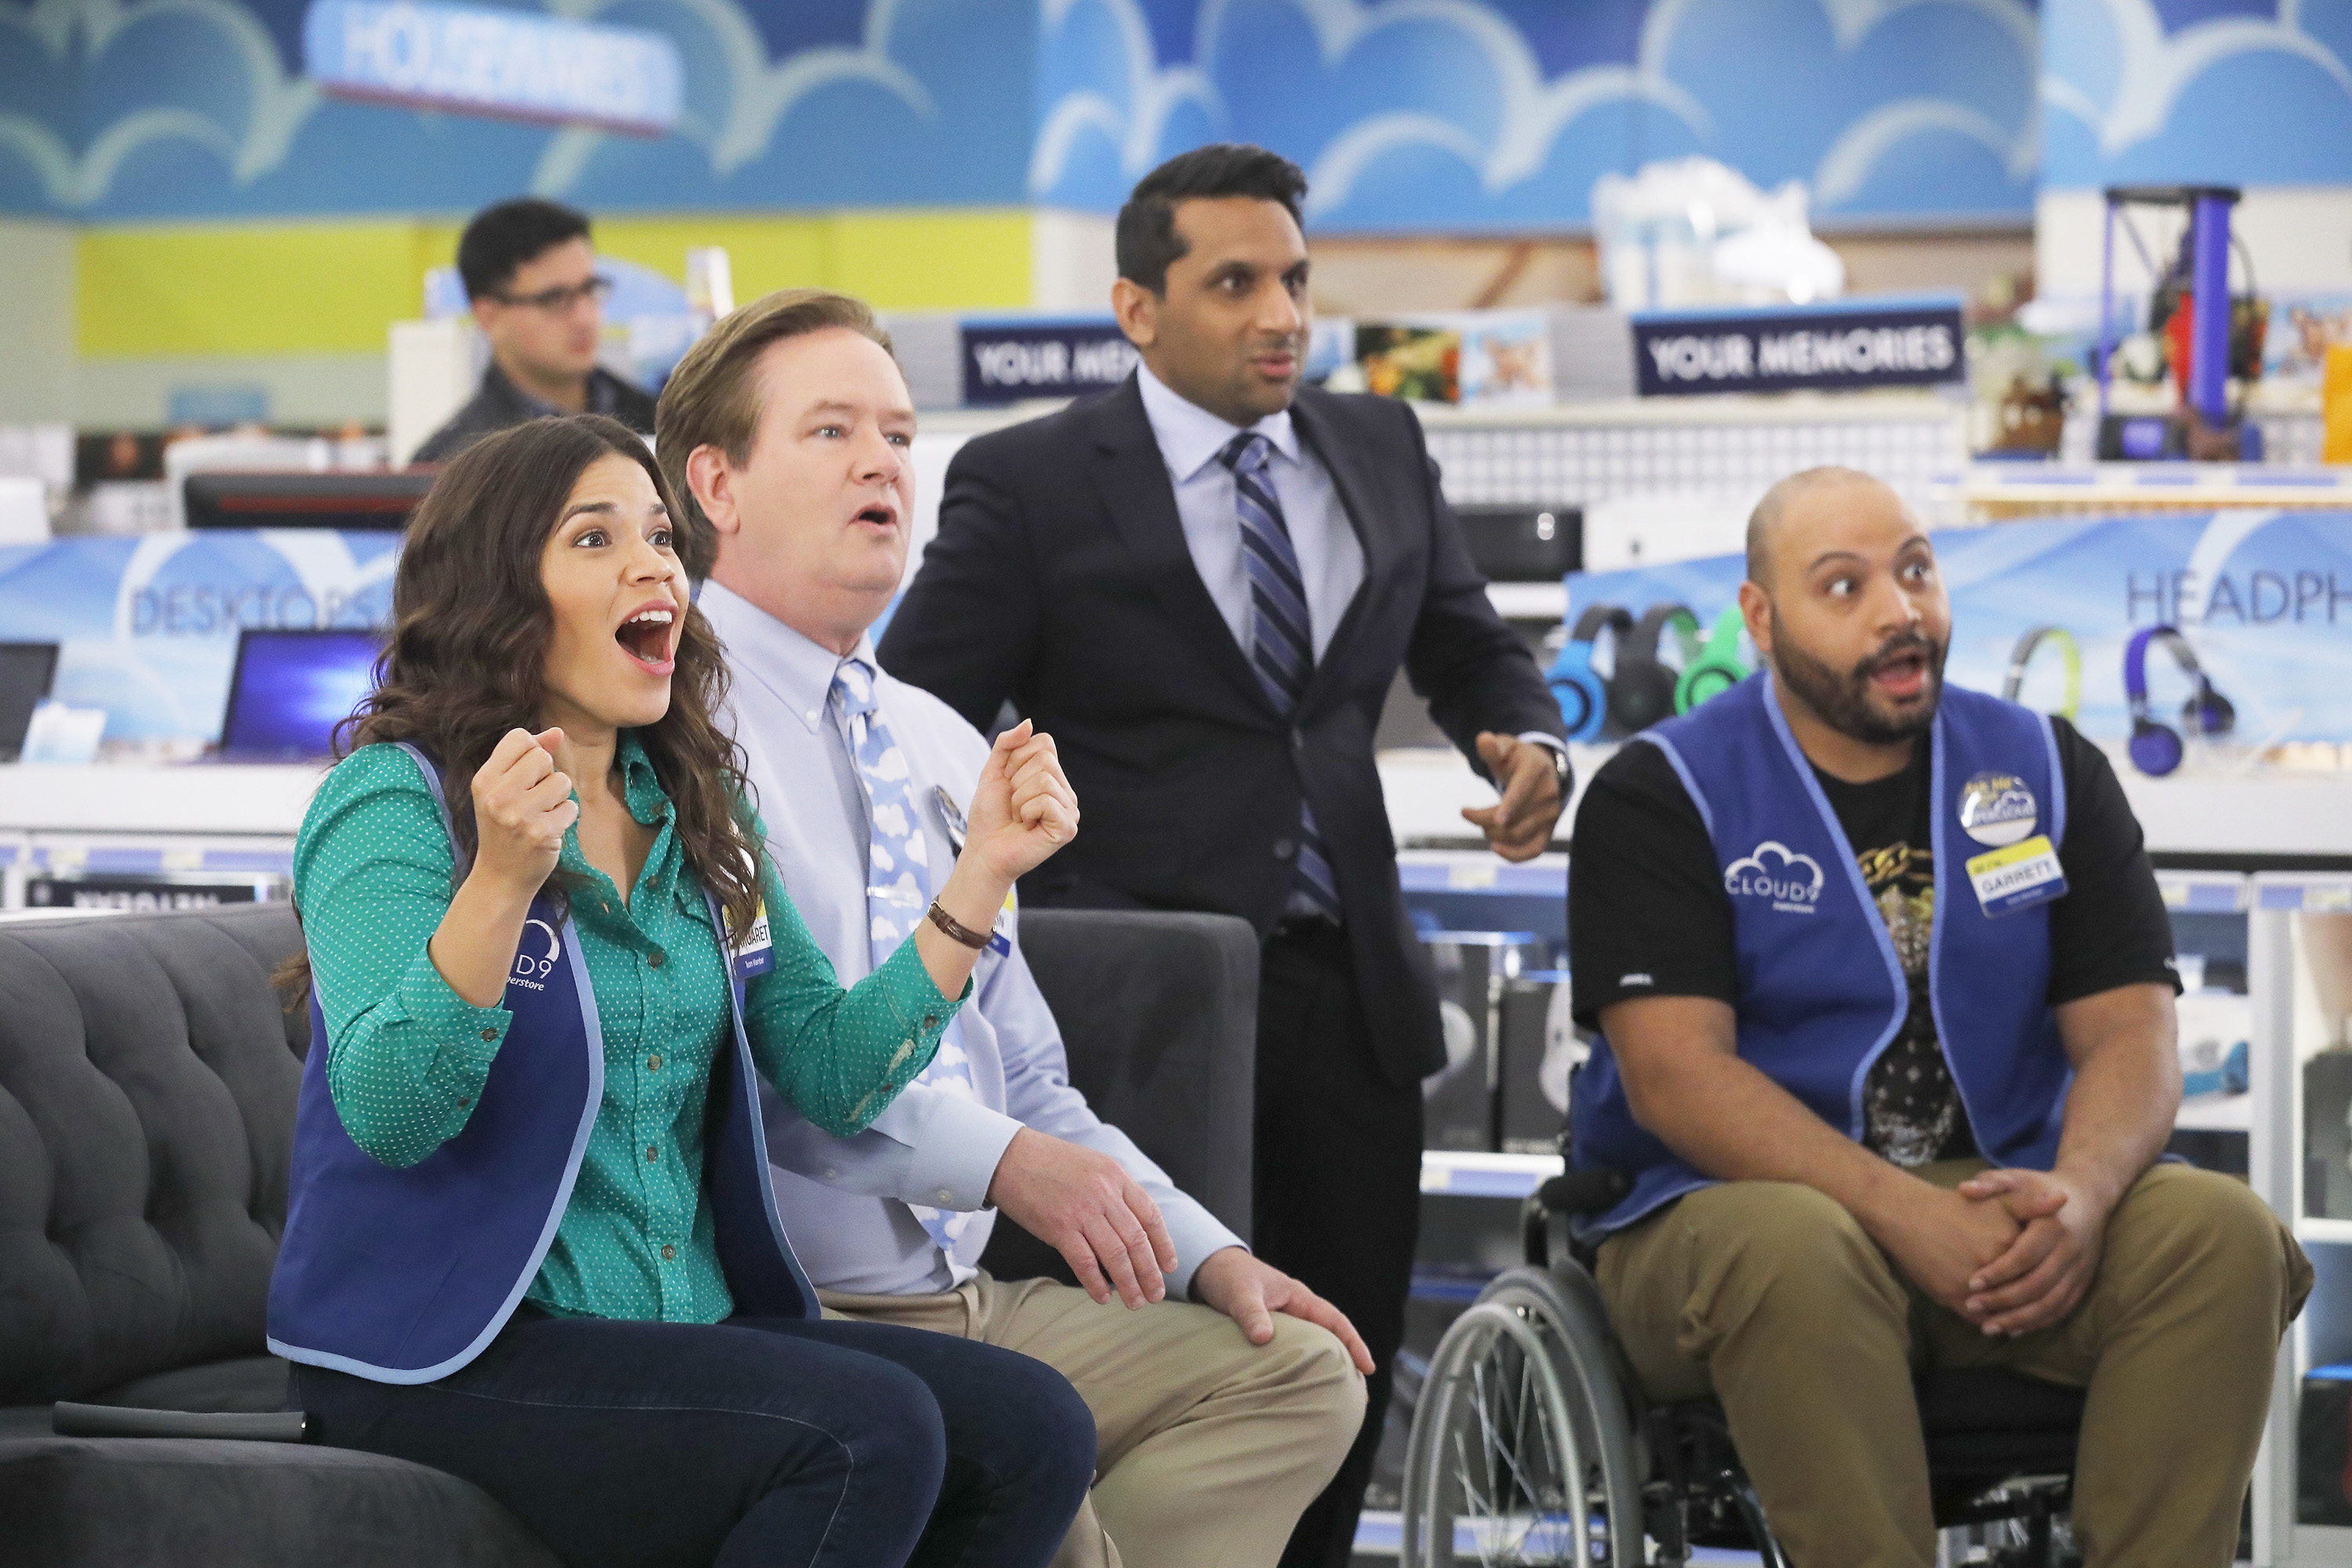 America Ferrera as Amy, Mark McKinney as Glenn, Ravi Patel as Rex, Colton Dunn as Garrett